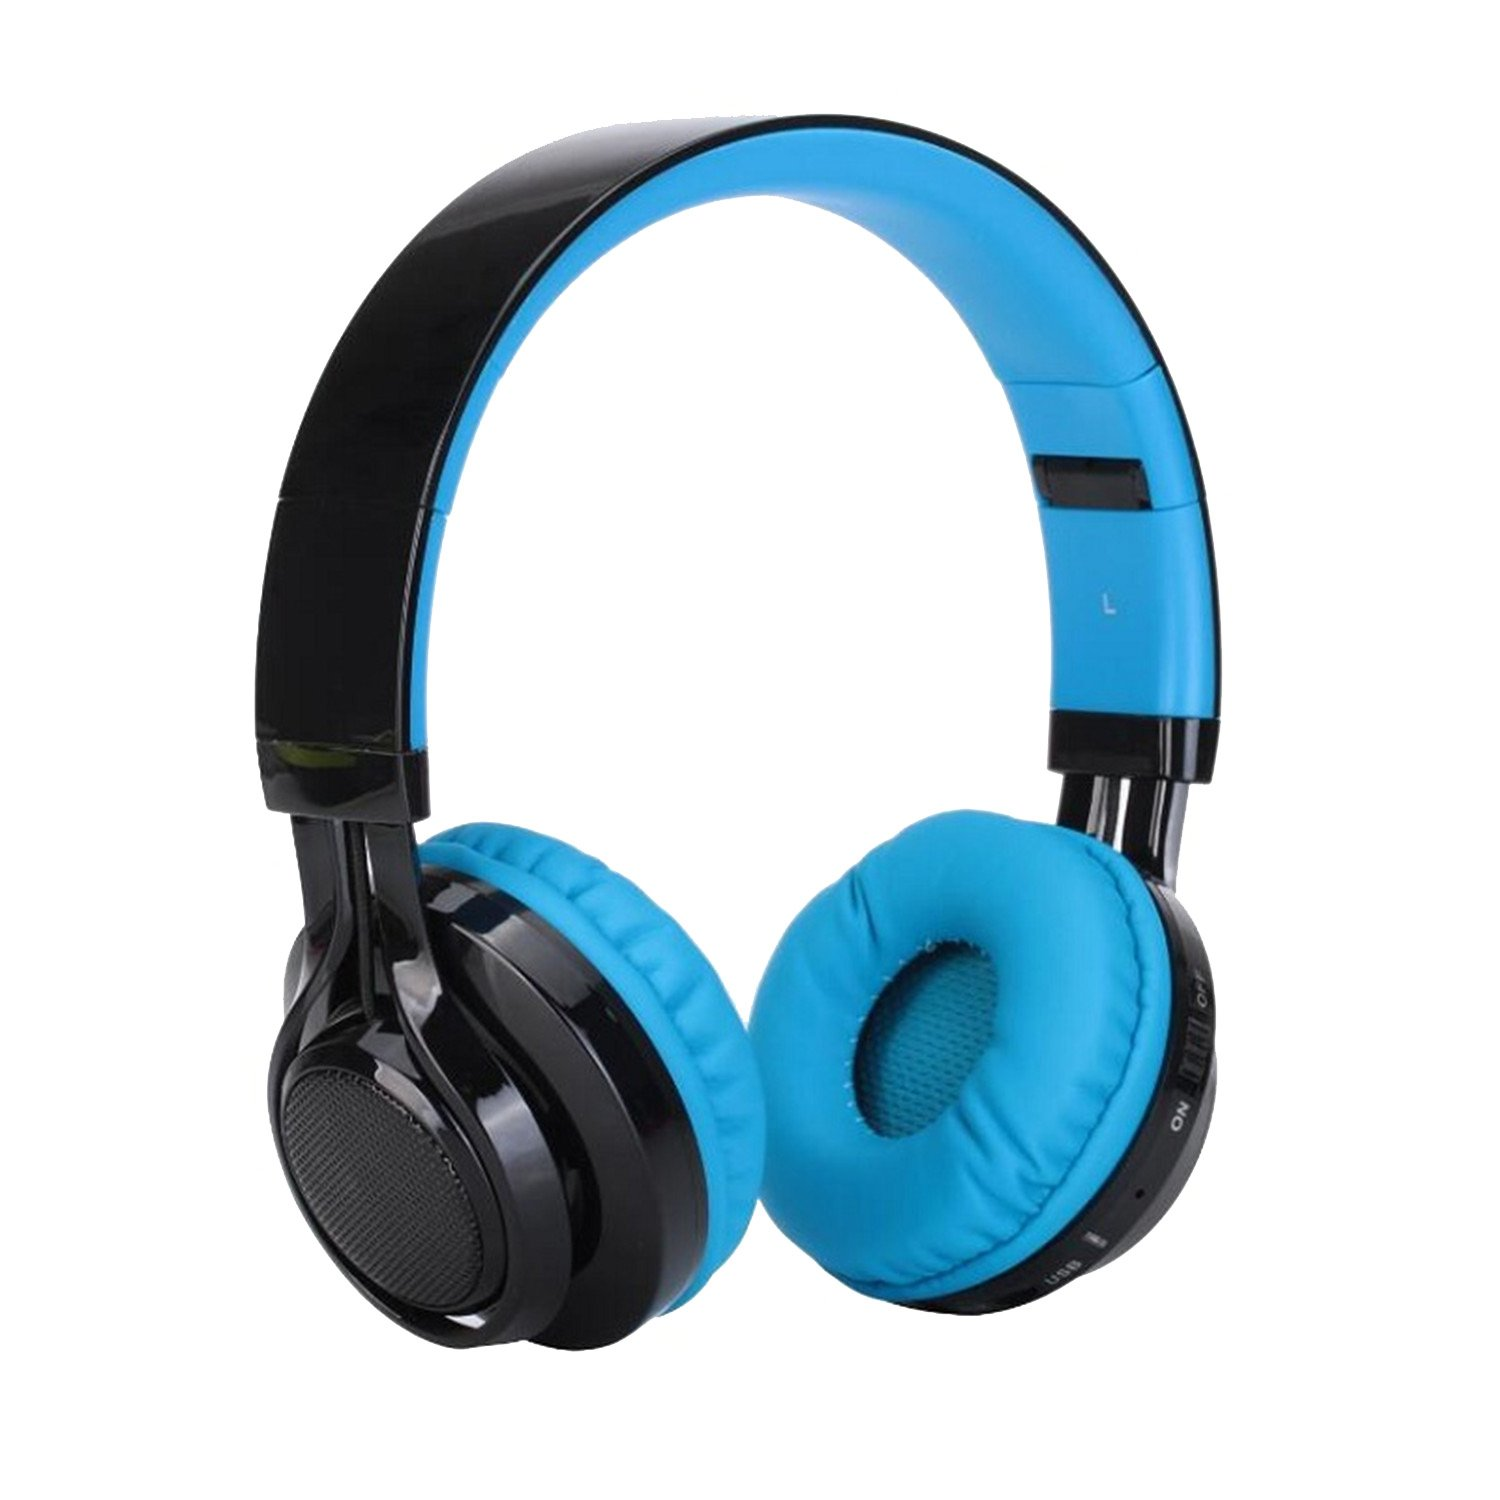 LuckyNV Super Bass Foldable LED Cordless Headphones with Micophone Sports Stereo Bluetooth Wireless Headset Blue